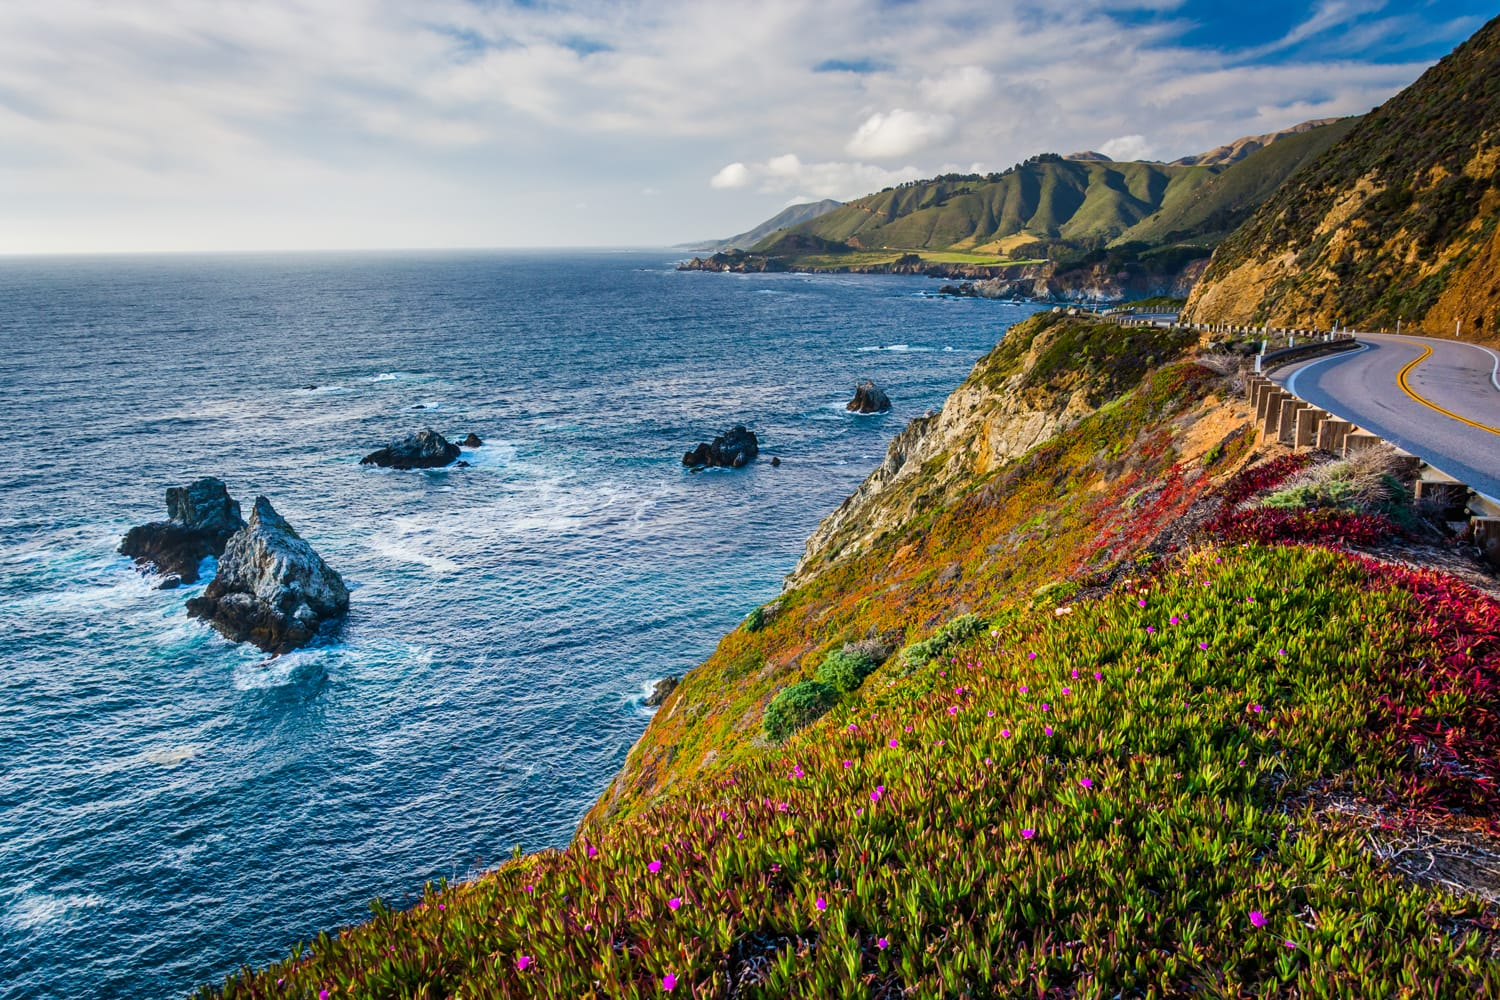 View of the Pacific Ocean and Pacific Coast Highway in Big Sur, California.